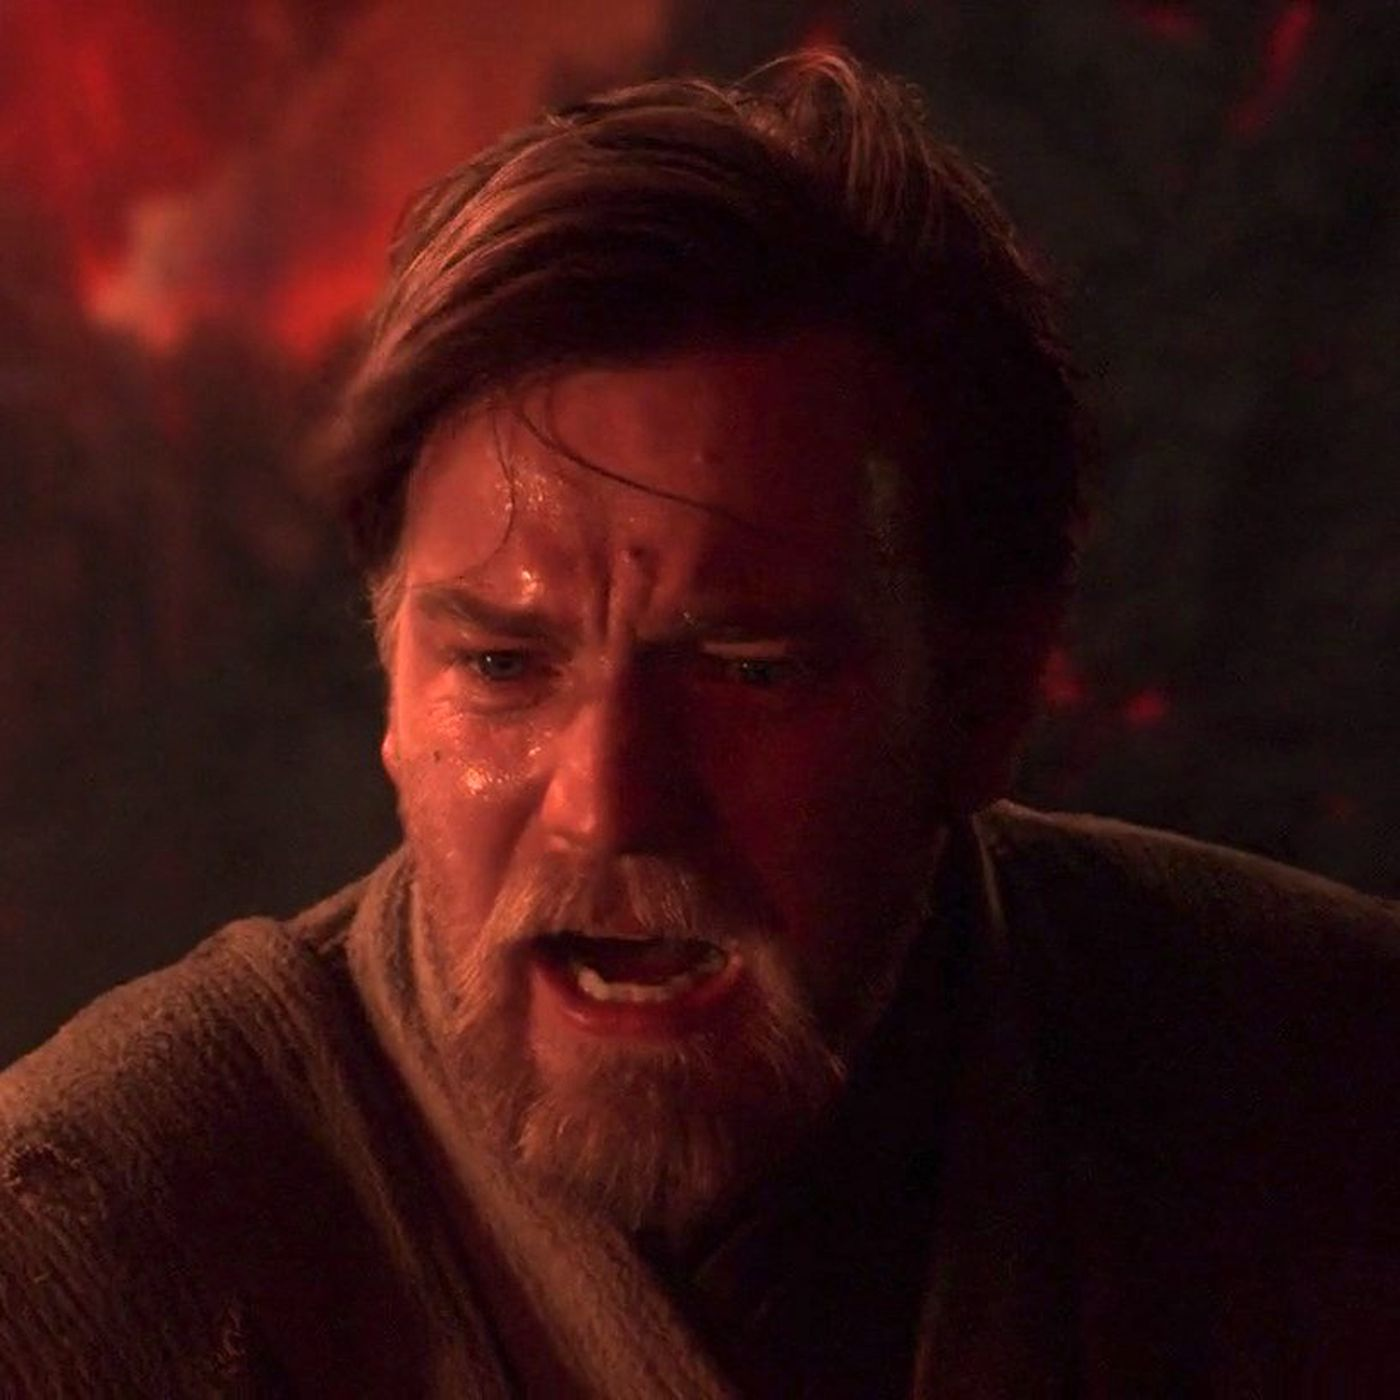 Obi Wan Kenobi Series Reportedly Scrapped And Being Retooled Polygon